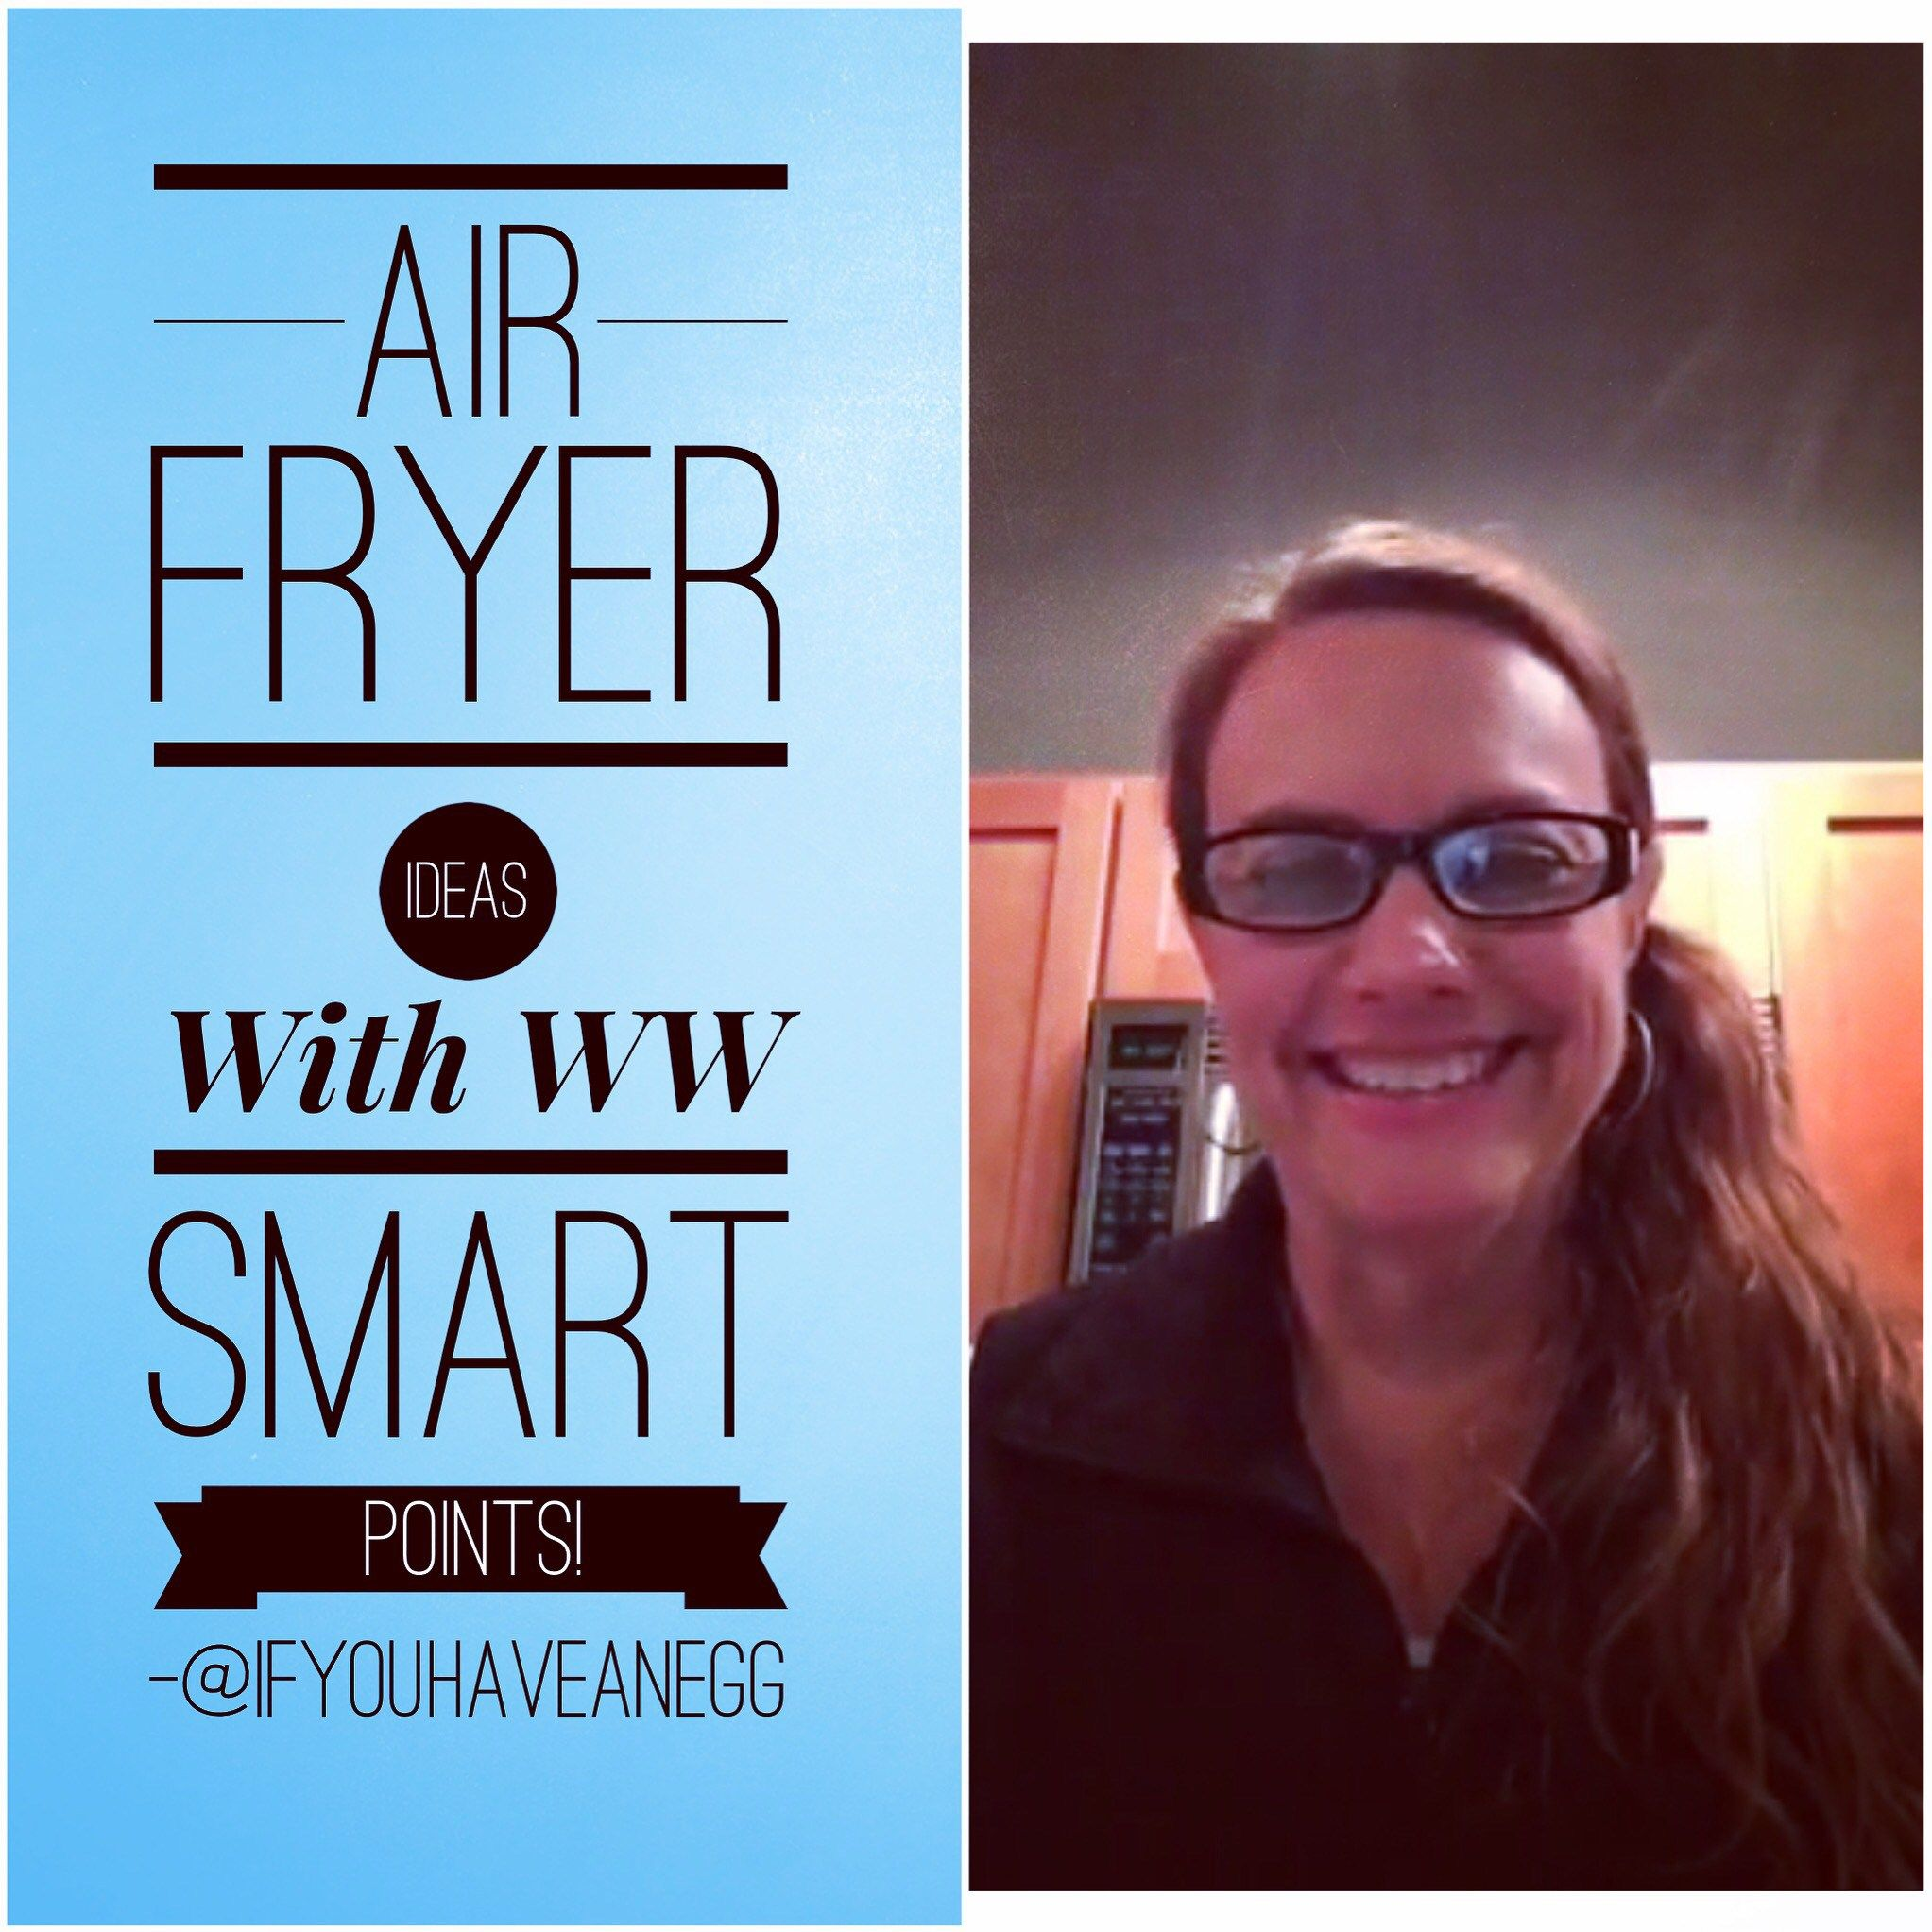 Weight watchers air fryer ideas with smart points facebook live